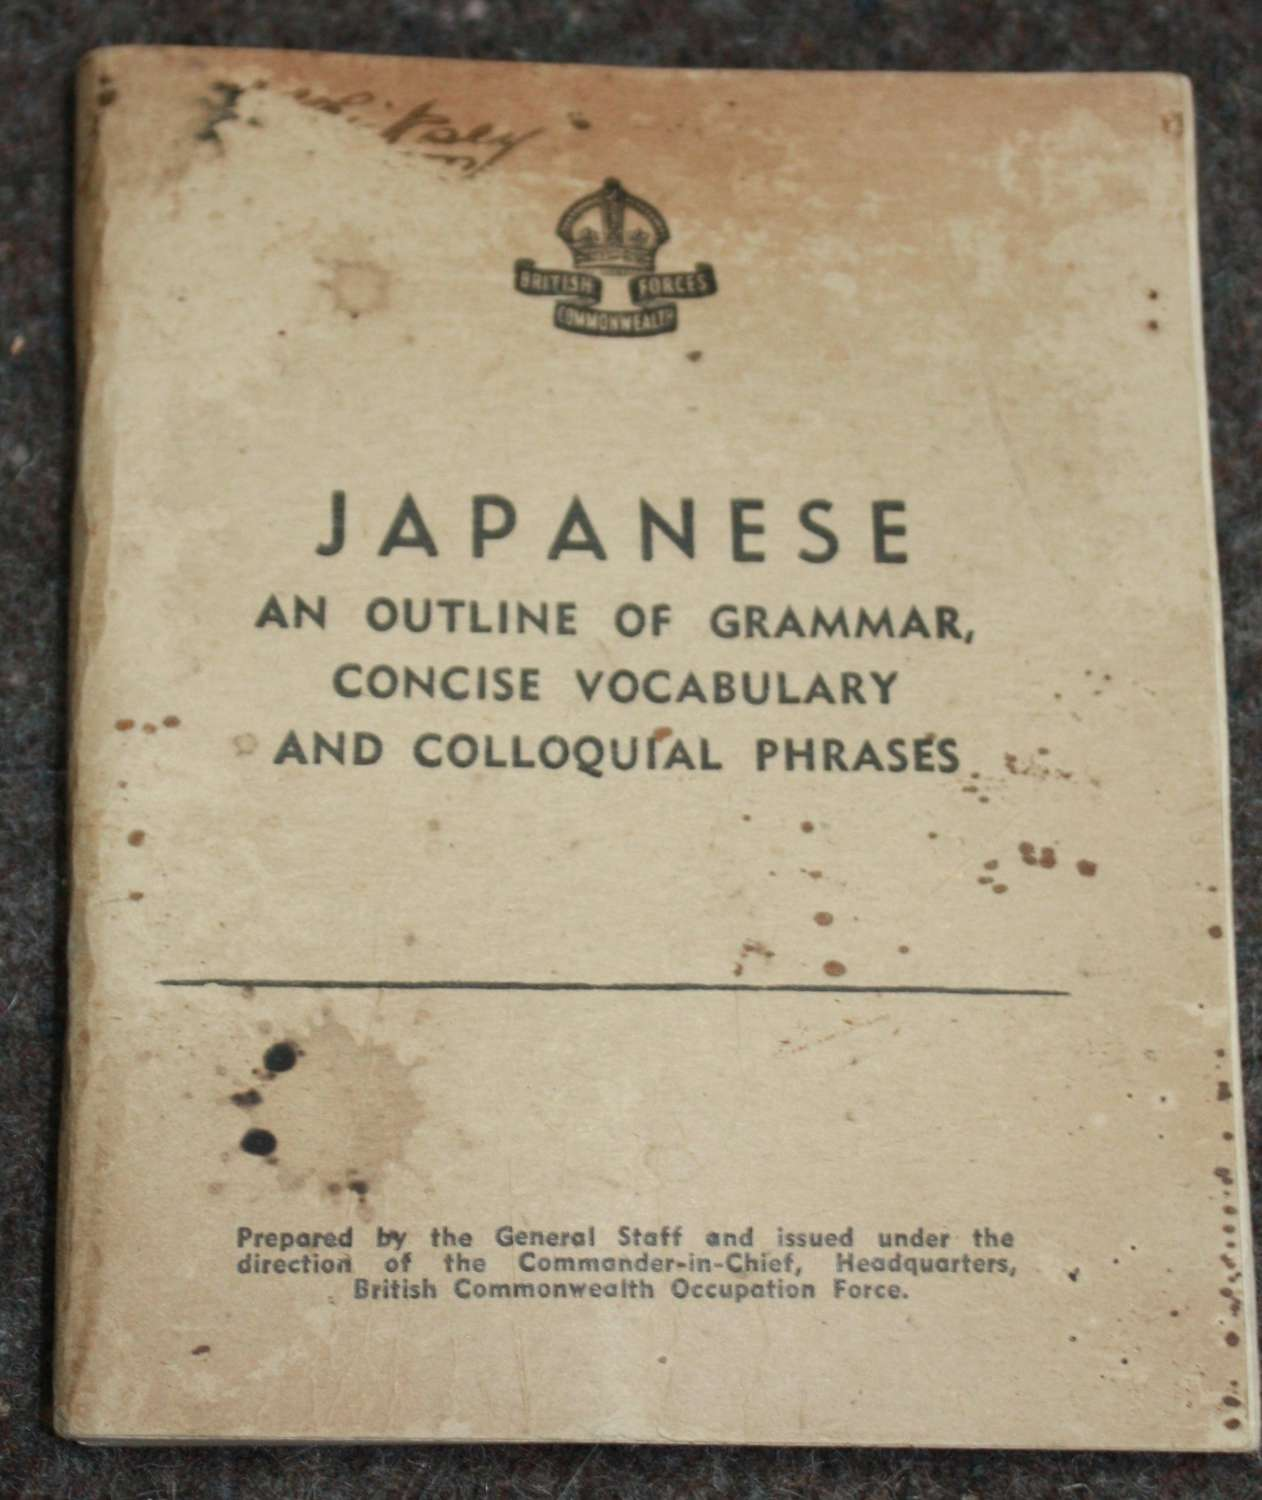 A 1946 ISSUE BRITISH COMMONWEALTH FORCES JAPANESE LANGUAGE BOOKLET